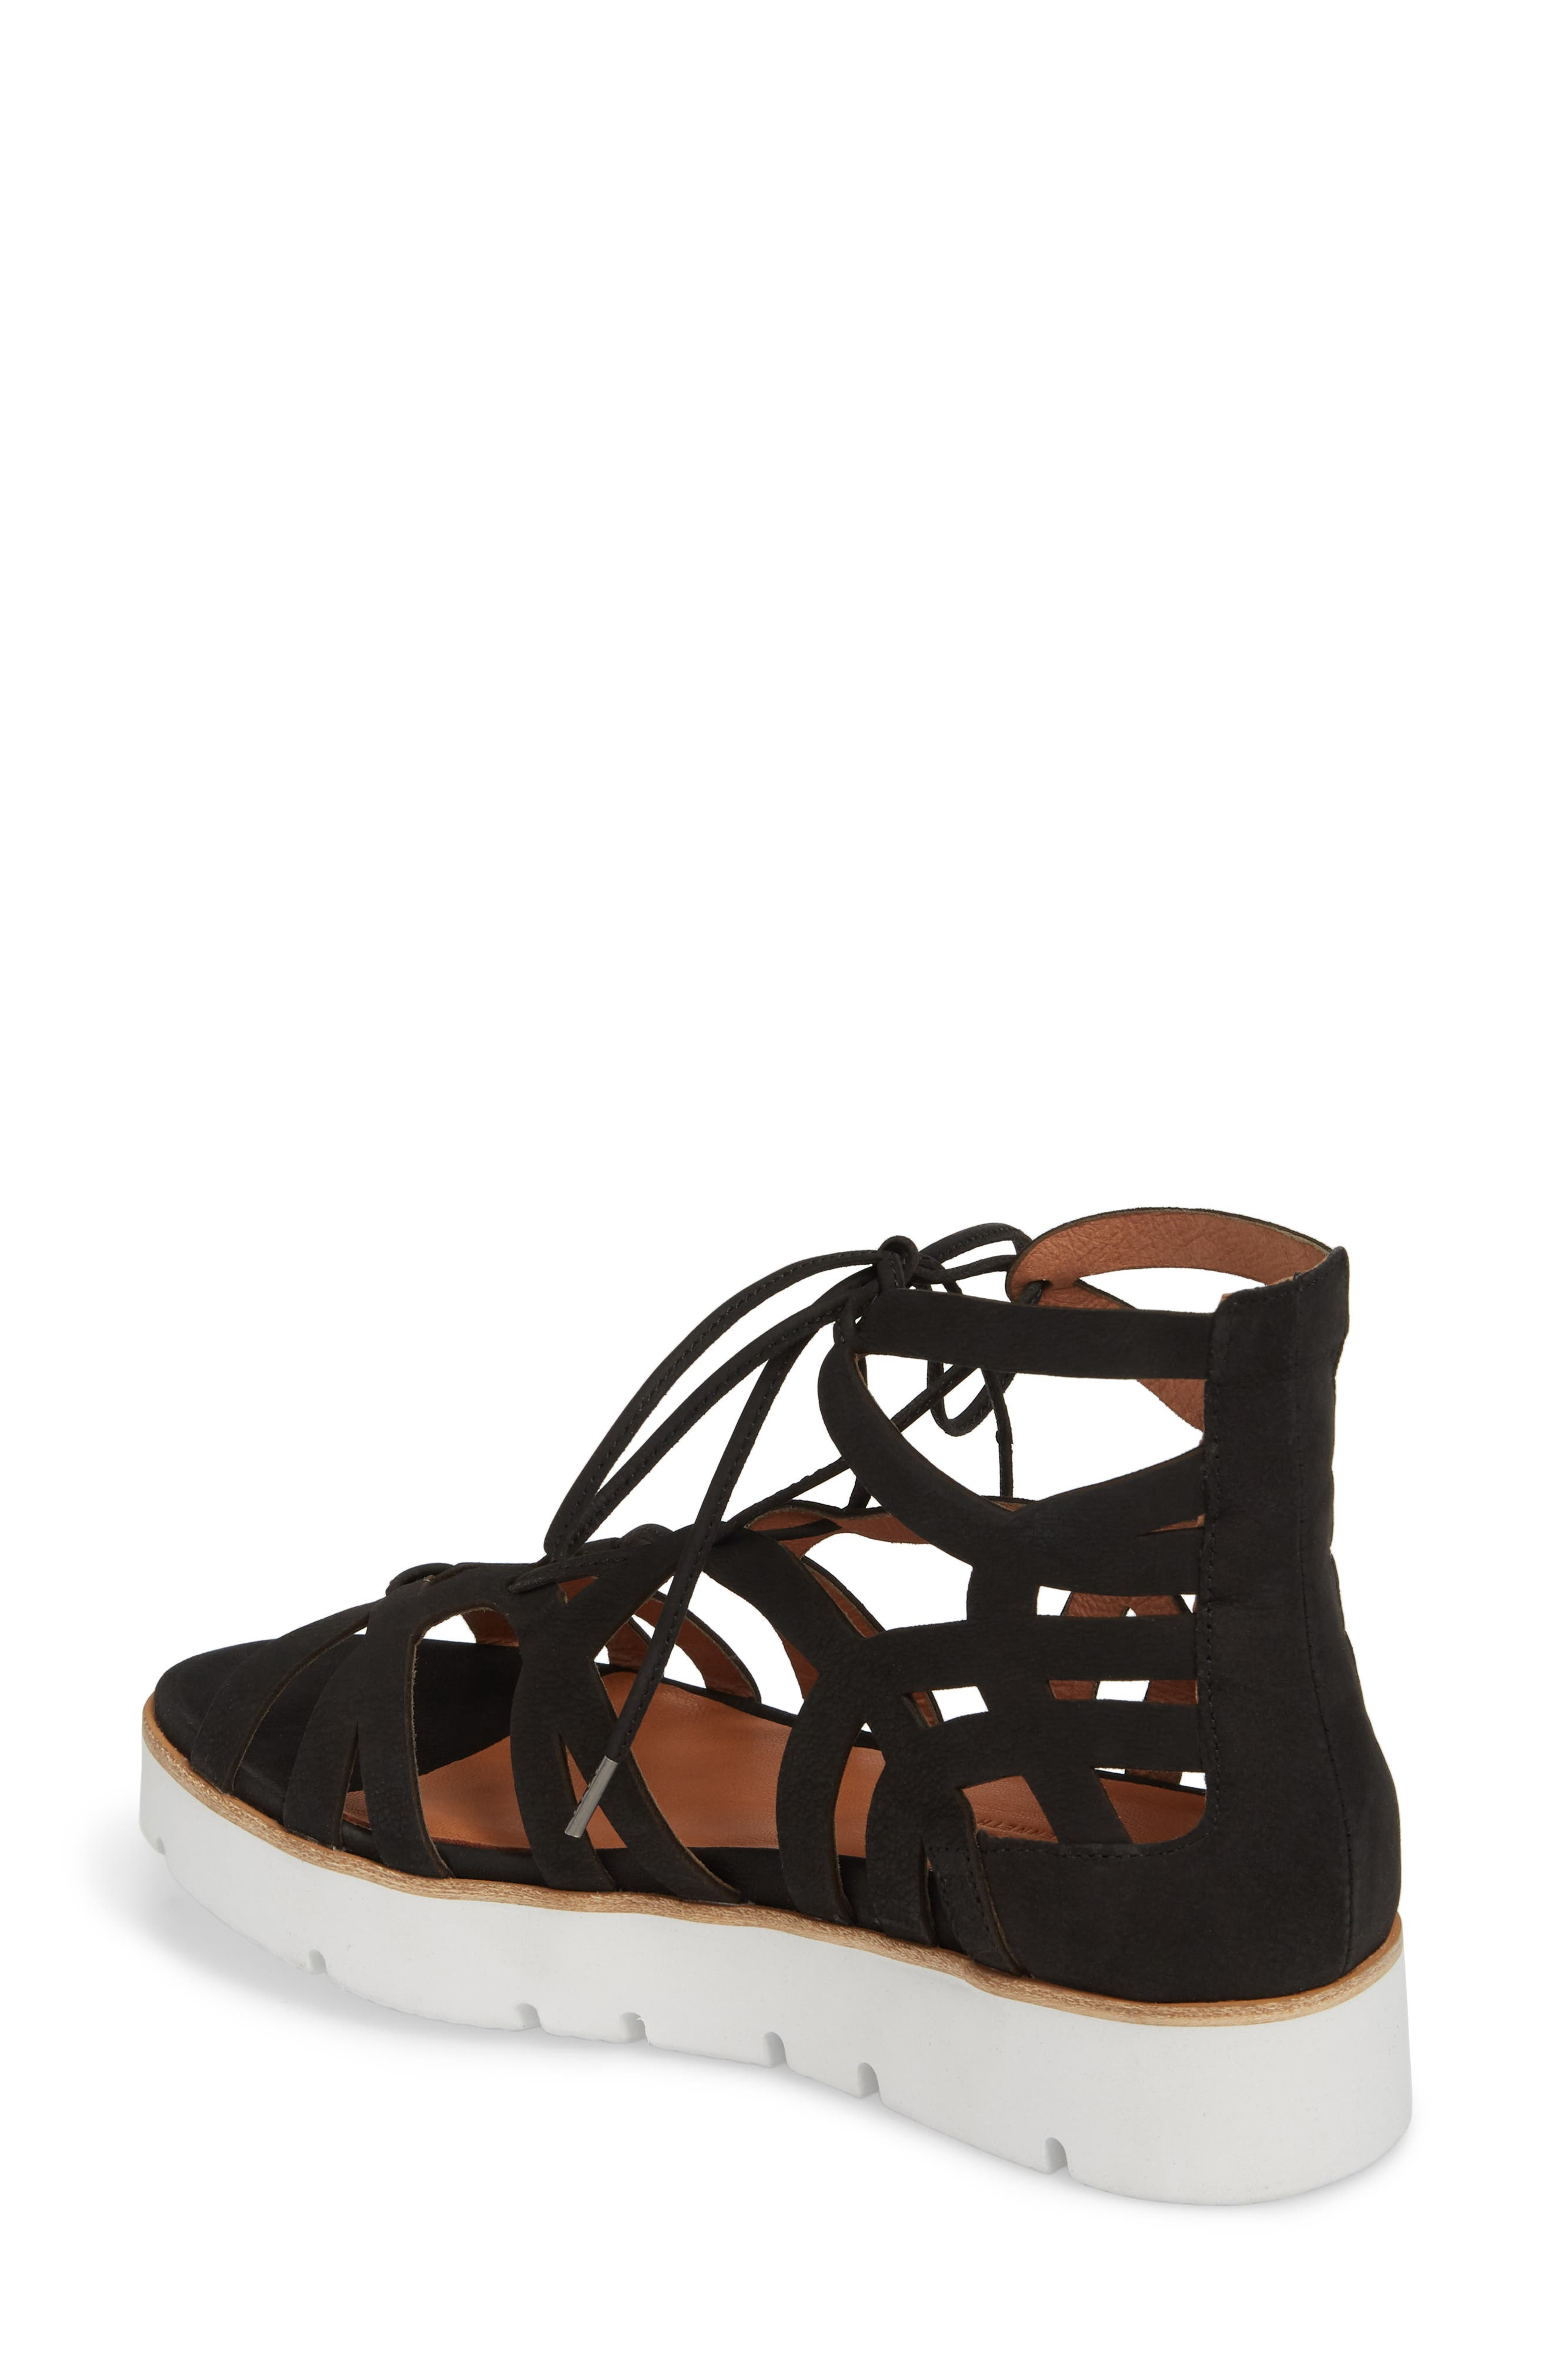 GENTLE SOULS BY KENNETH COLE, Larina Lace-Up Sandal, Alternate thumbnail 2, color, BLACK NUBUCK